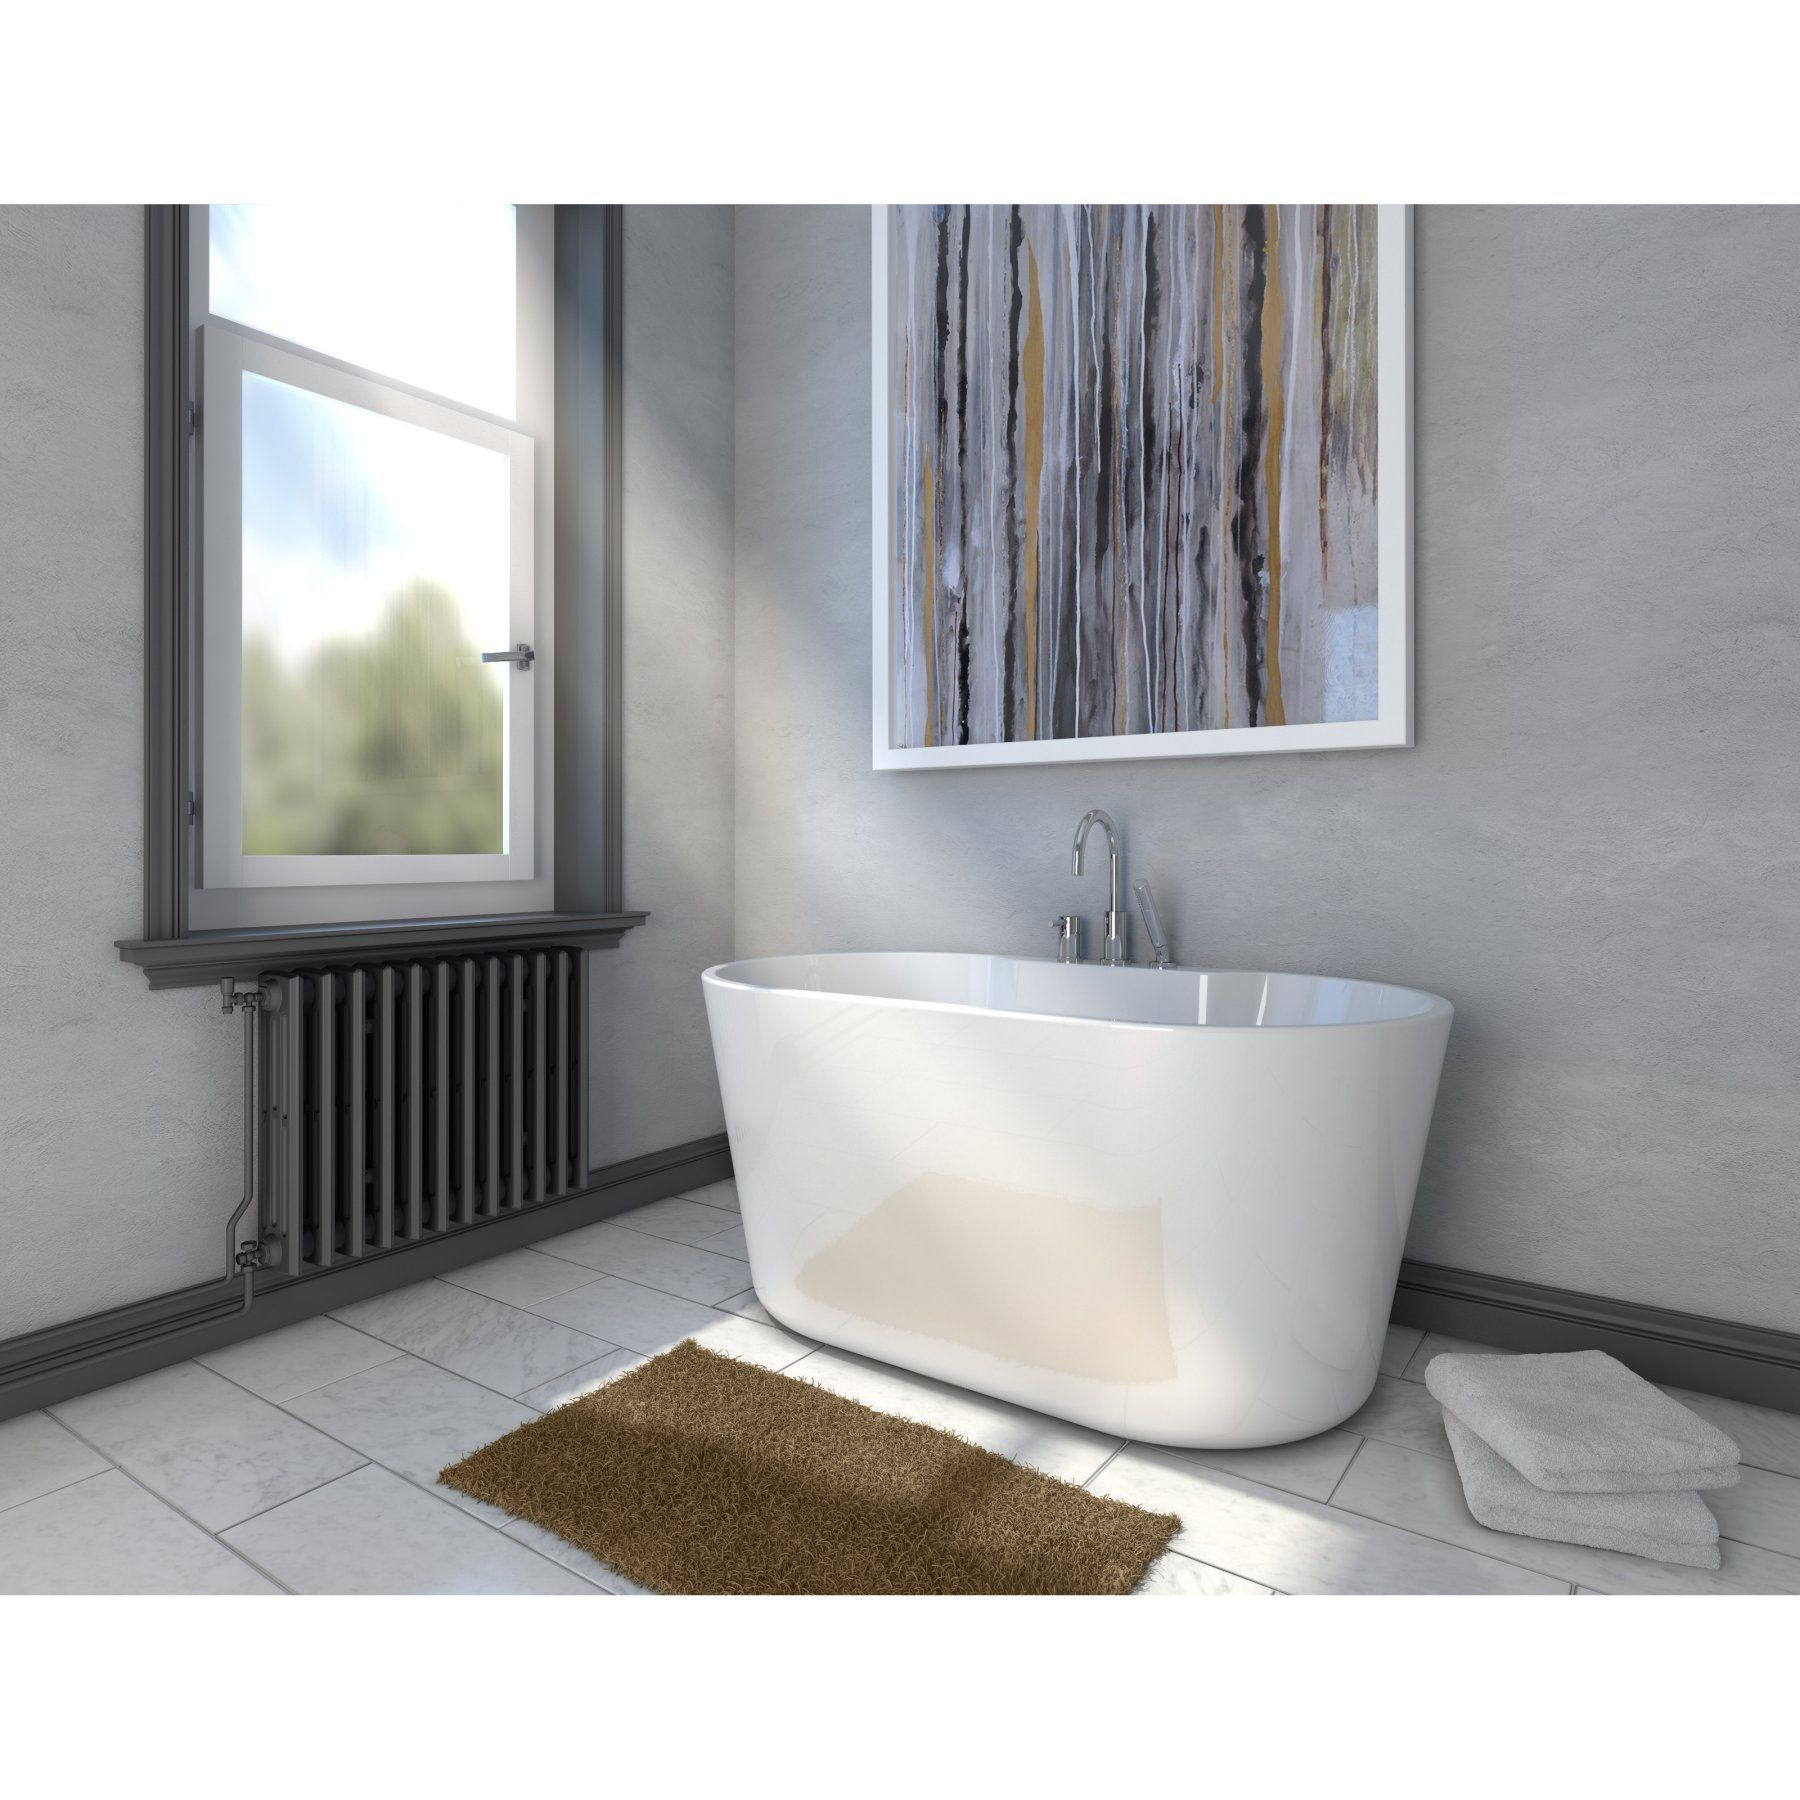 A And E Bath And Shower Retro Free Standing Tub